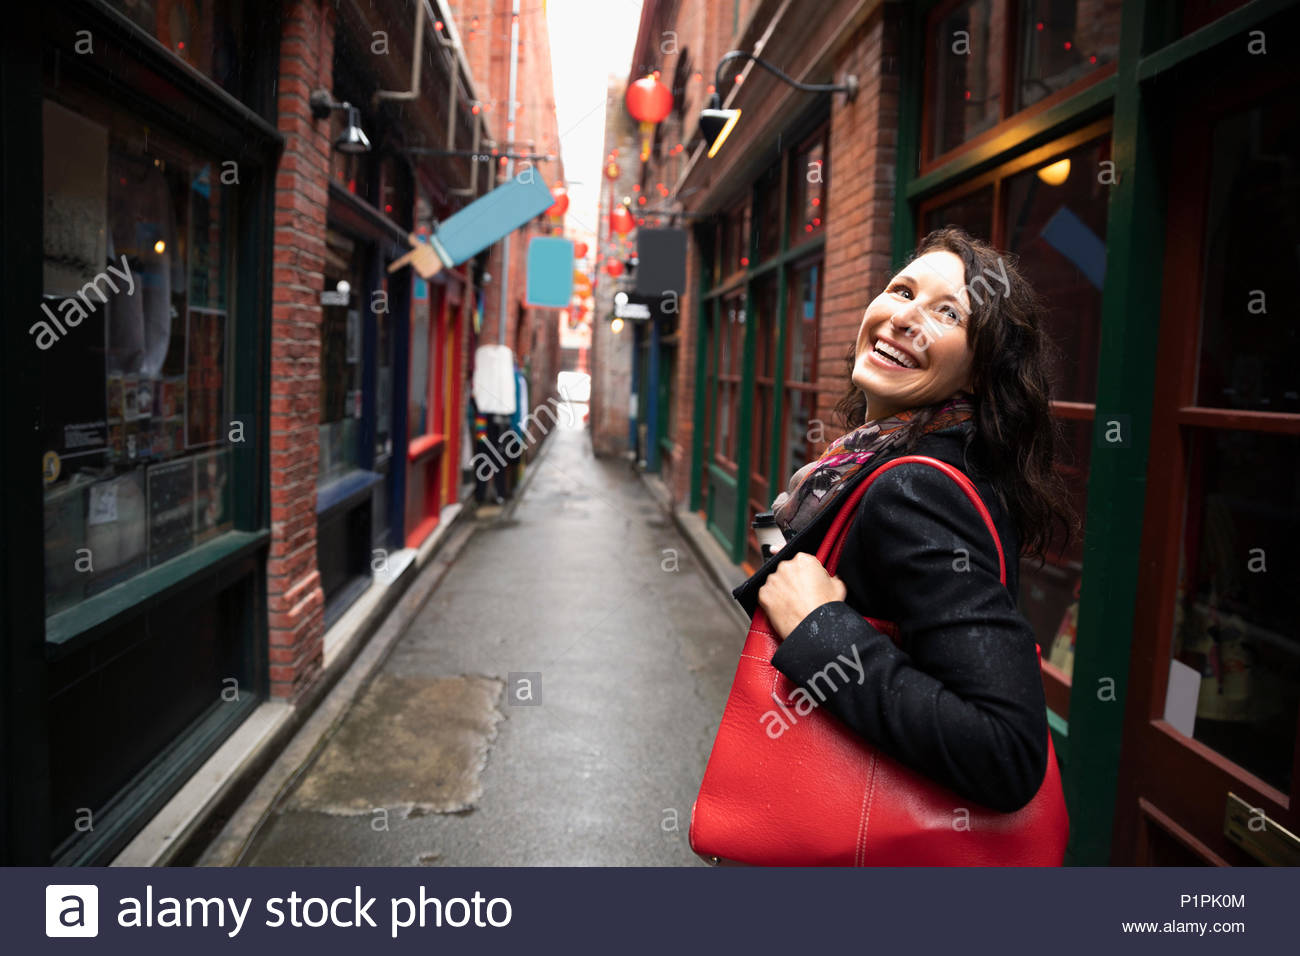 Smiling, carefree woman in urban alley - Stock Image